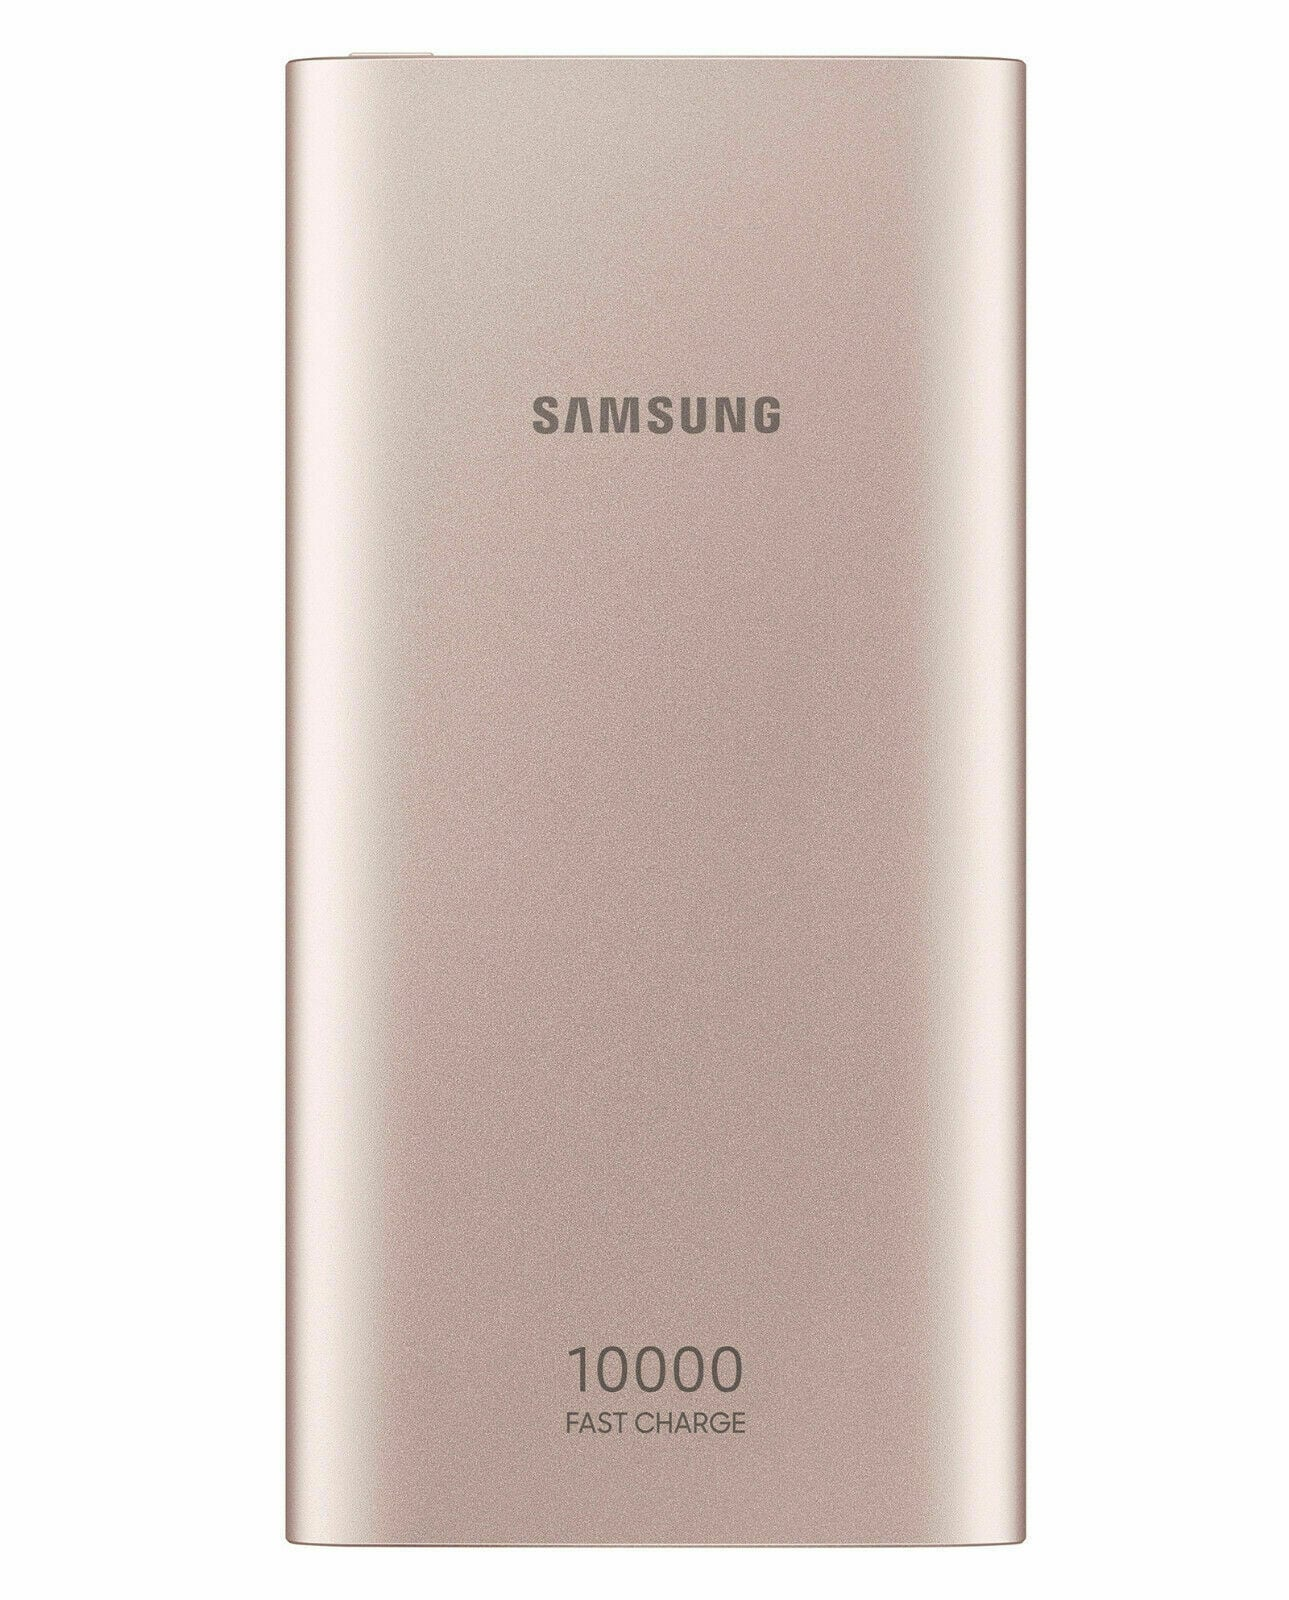 Samsung 10,000 mAh Portable Battery Pack w/ Micro USB Cable